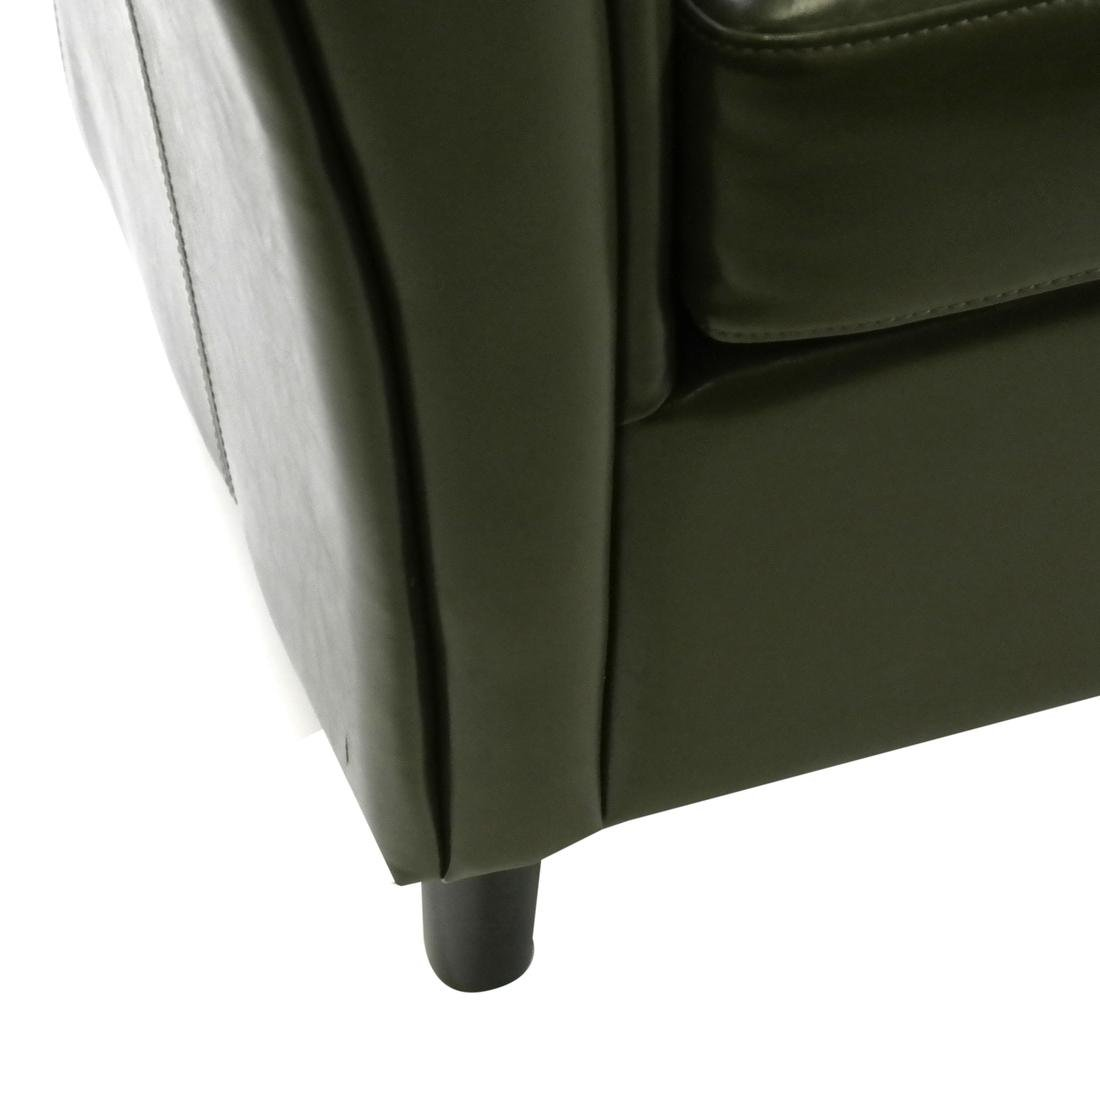 Pair of Green Club Chairs - 4